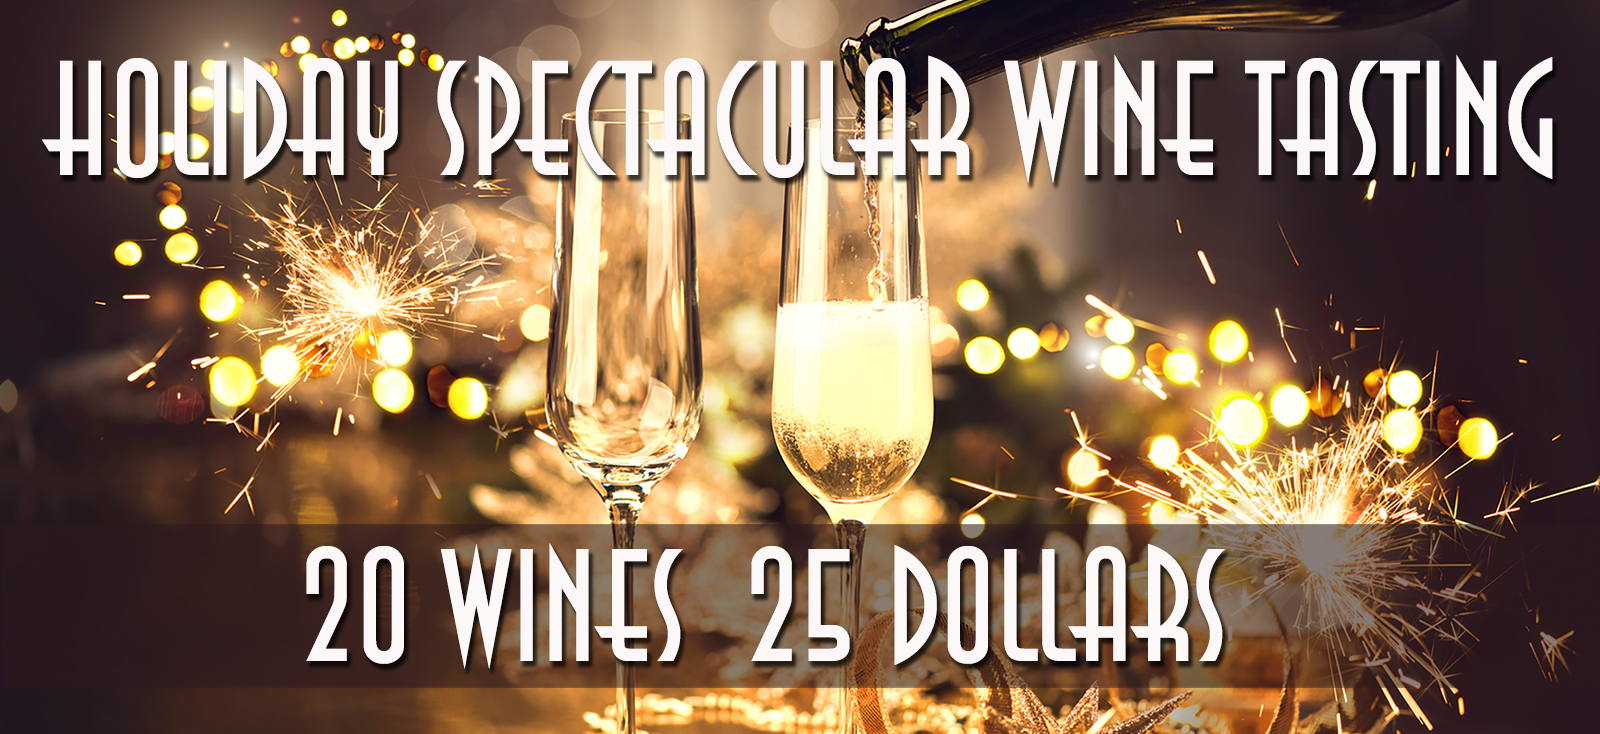 Holiday Wine Tasting 20 Wines for 25 Dollars